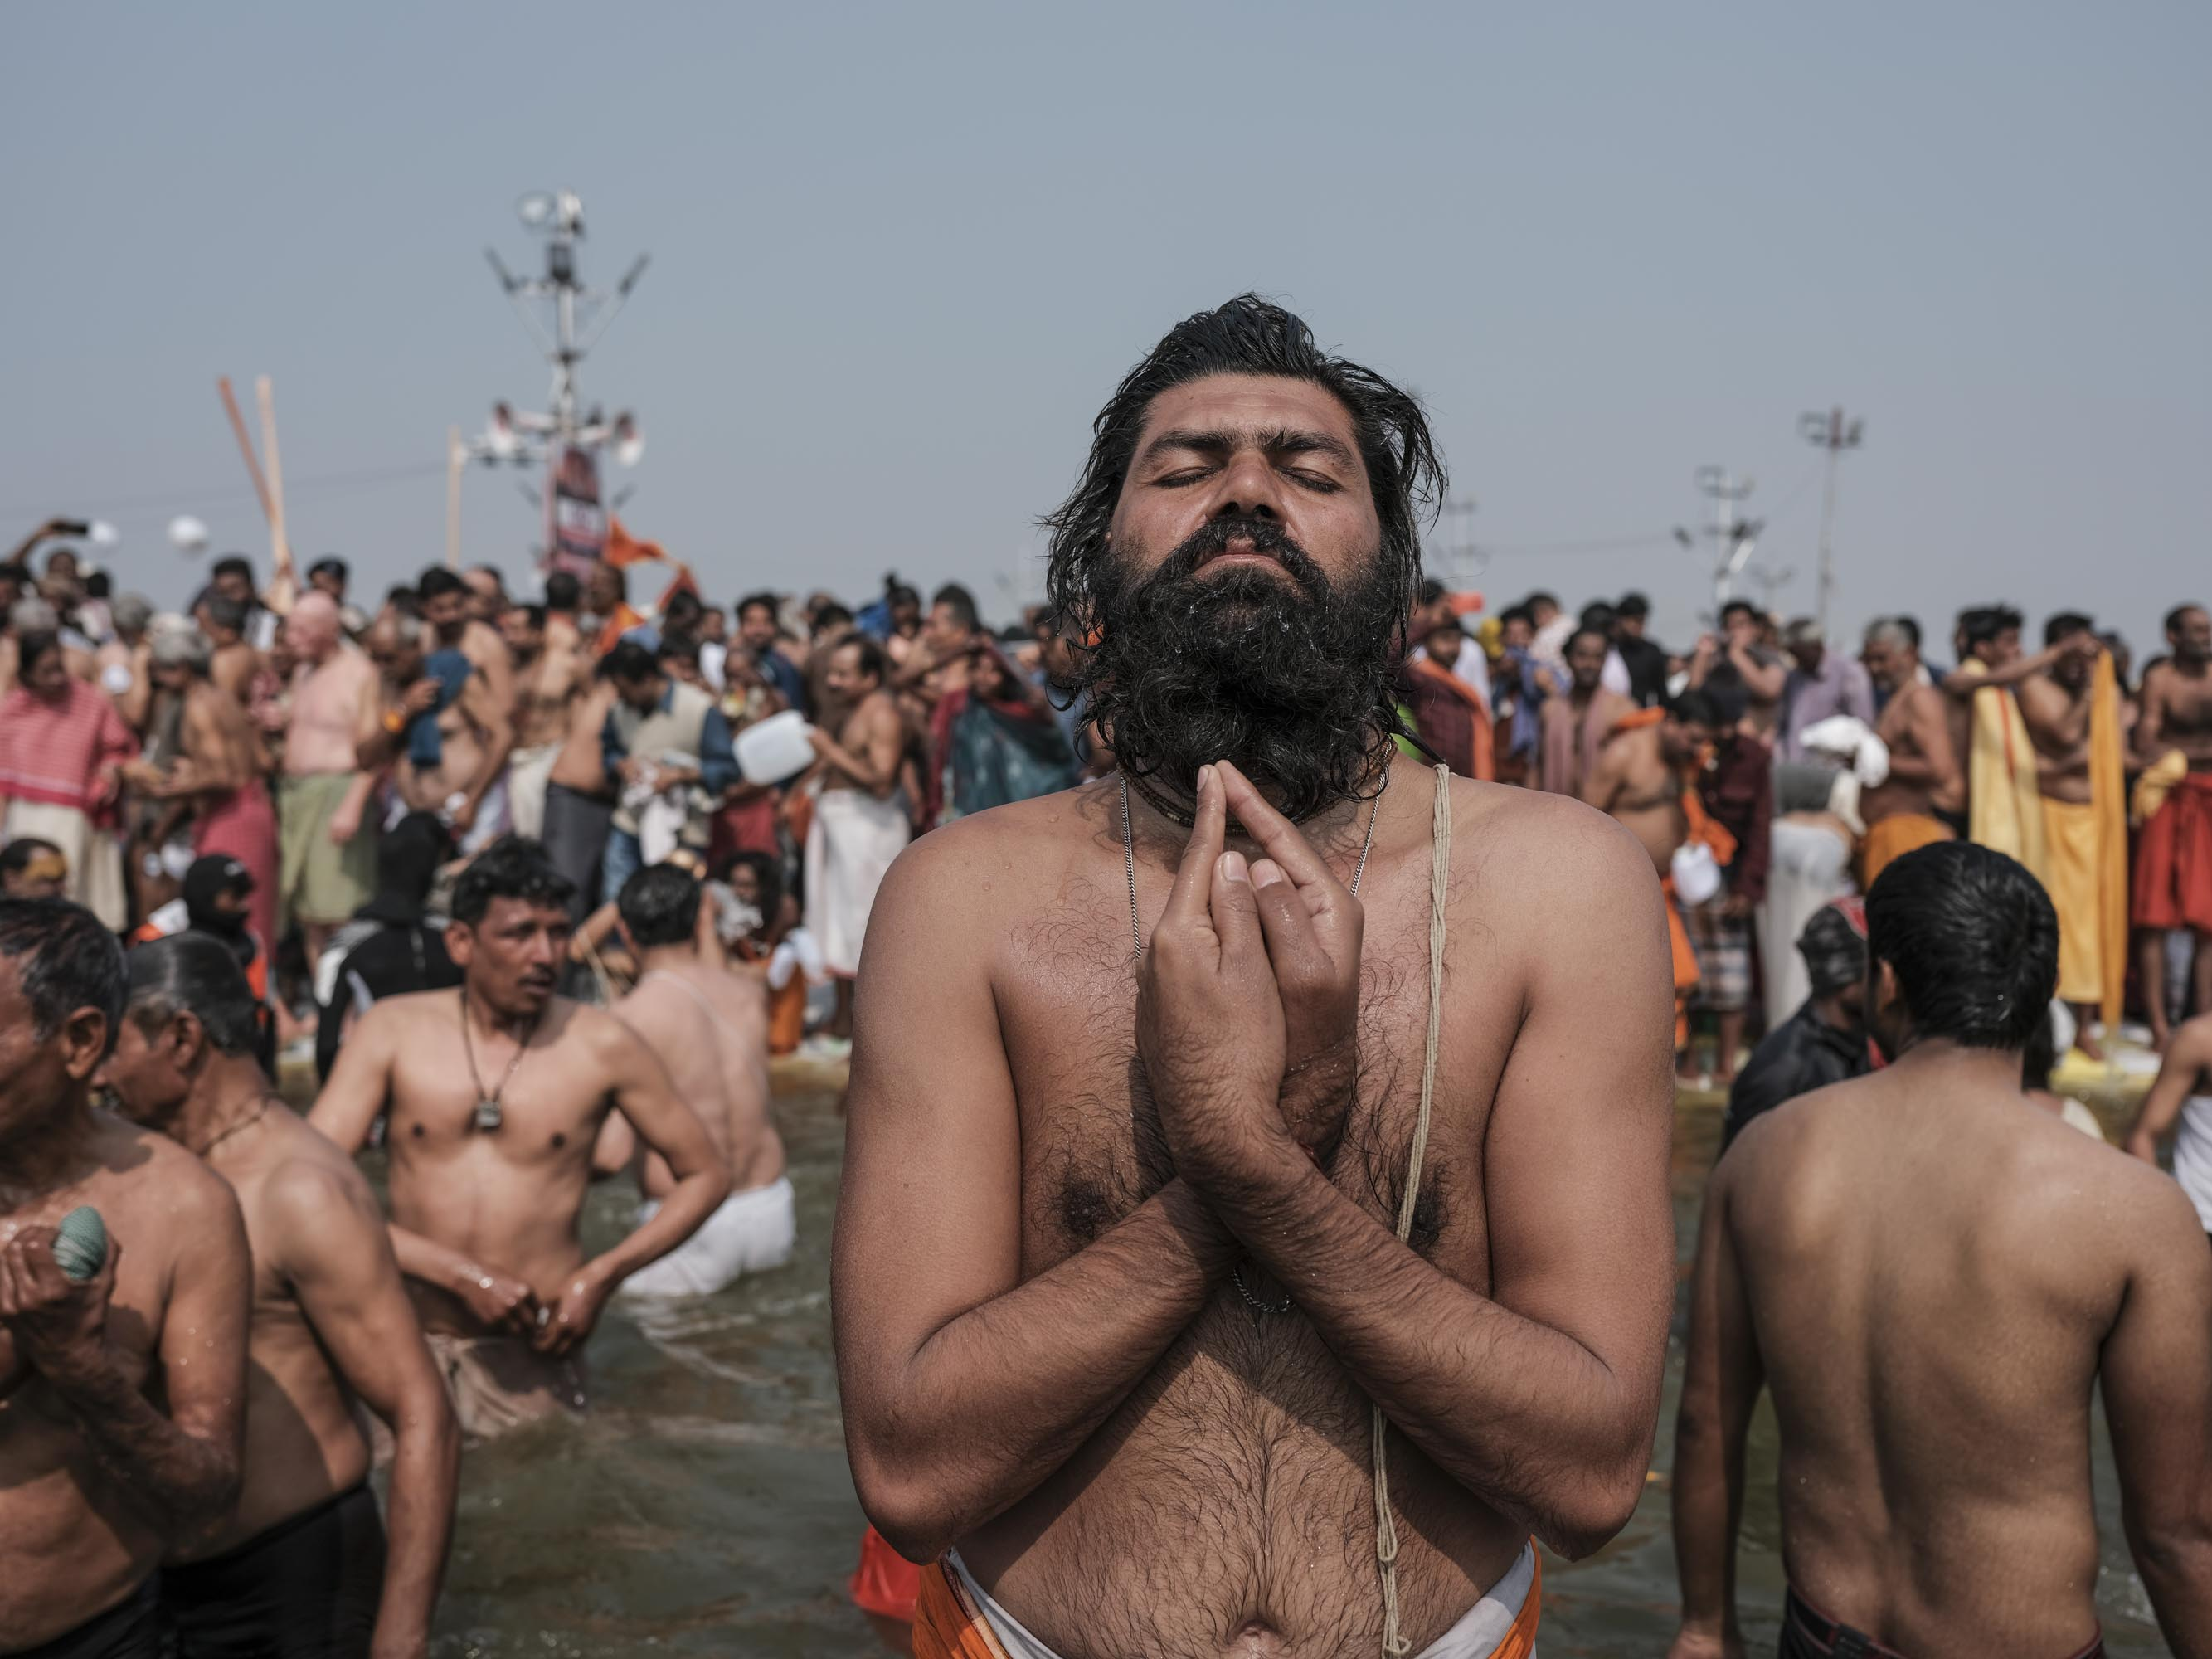 man prayer beard pilgrims Kumbh mela 2019 India Allahabad Prayagraj Ardh hindu religious Festival event rivers photographer jose jeuland photography